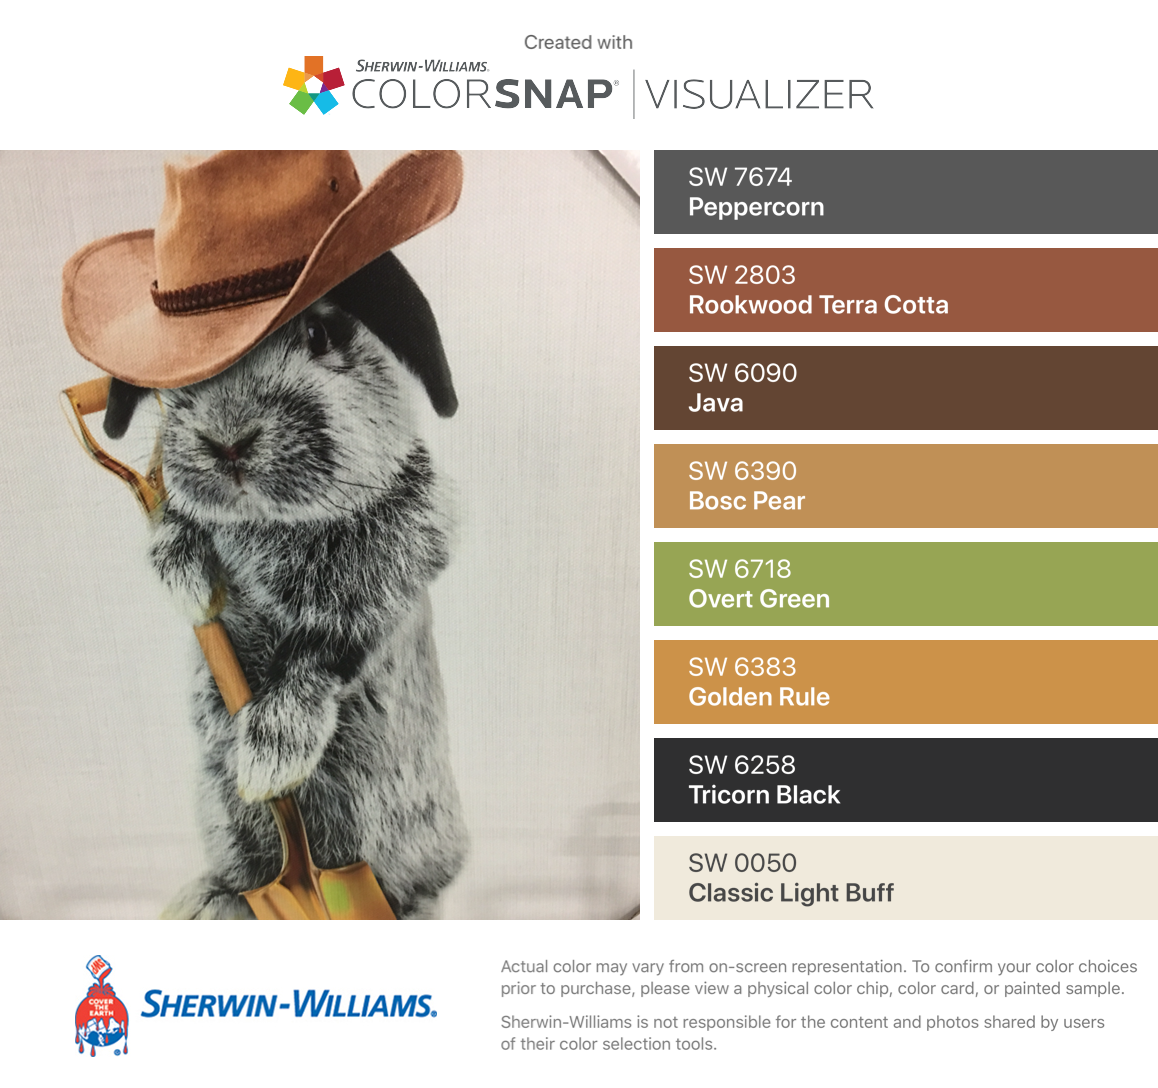 I Found These Colors With Colorsnap Visualizer For Iphone By Sherwin Williams Peppercorn Sw 7674 Rookwood Terra Cotta Color Sherwin Williams Golden Rule